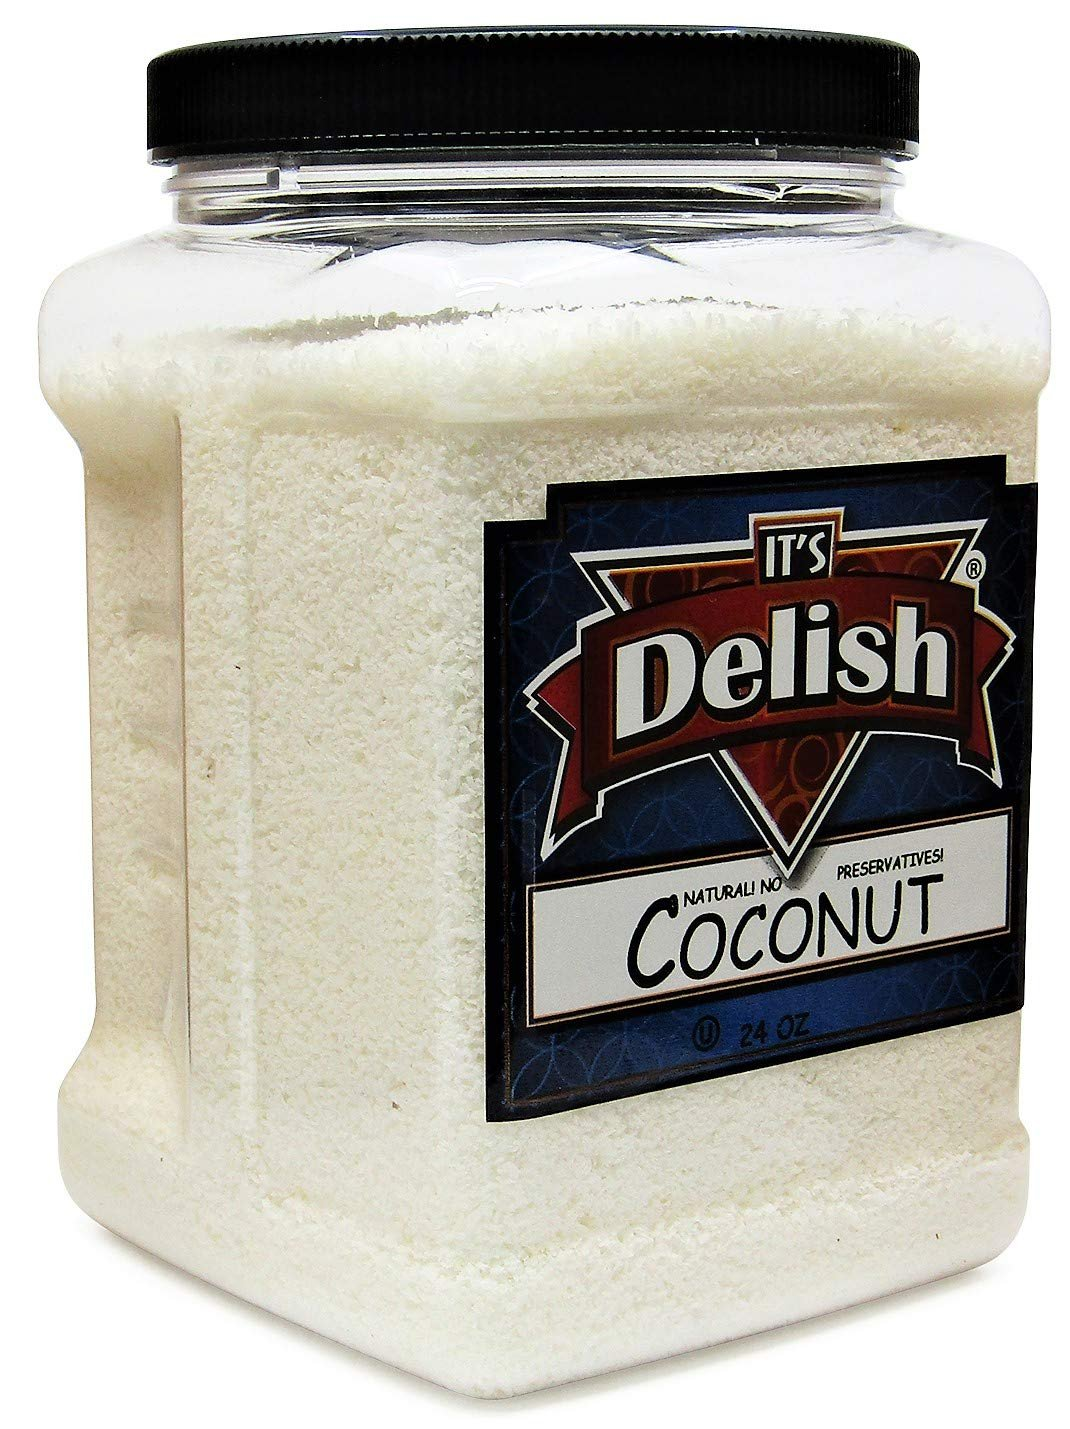 Gourmet Macaroon Ground Coconut by Its Delish - 24 Oz (1.5 LB) Jumbo Container - Raw, Unsweetened, Natural & Gluten-Free Coconut Flour